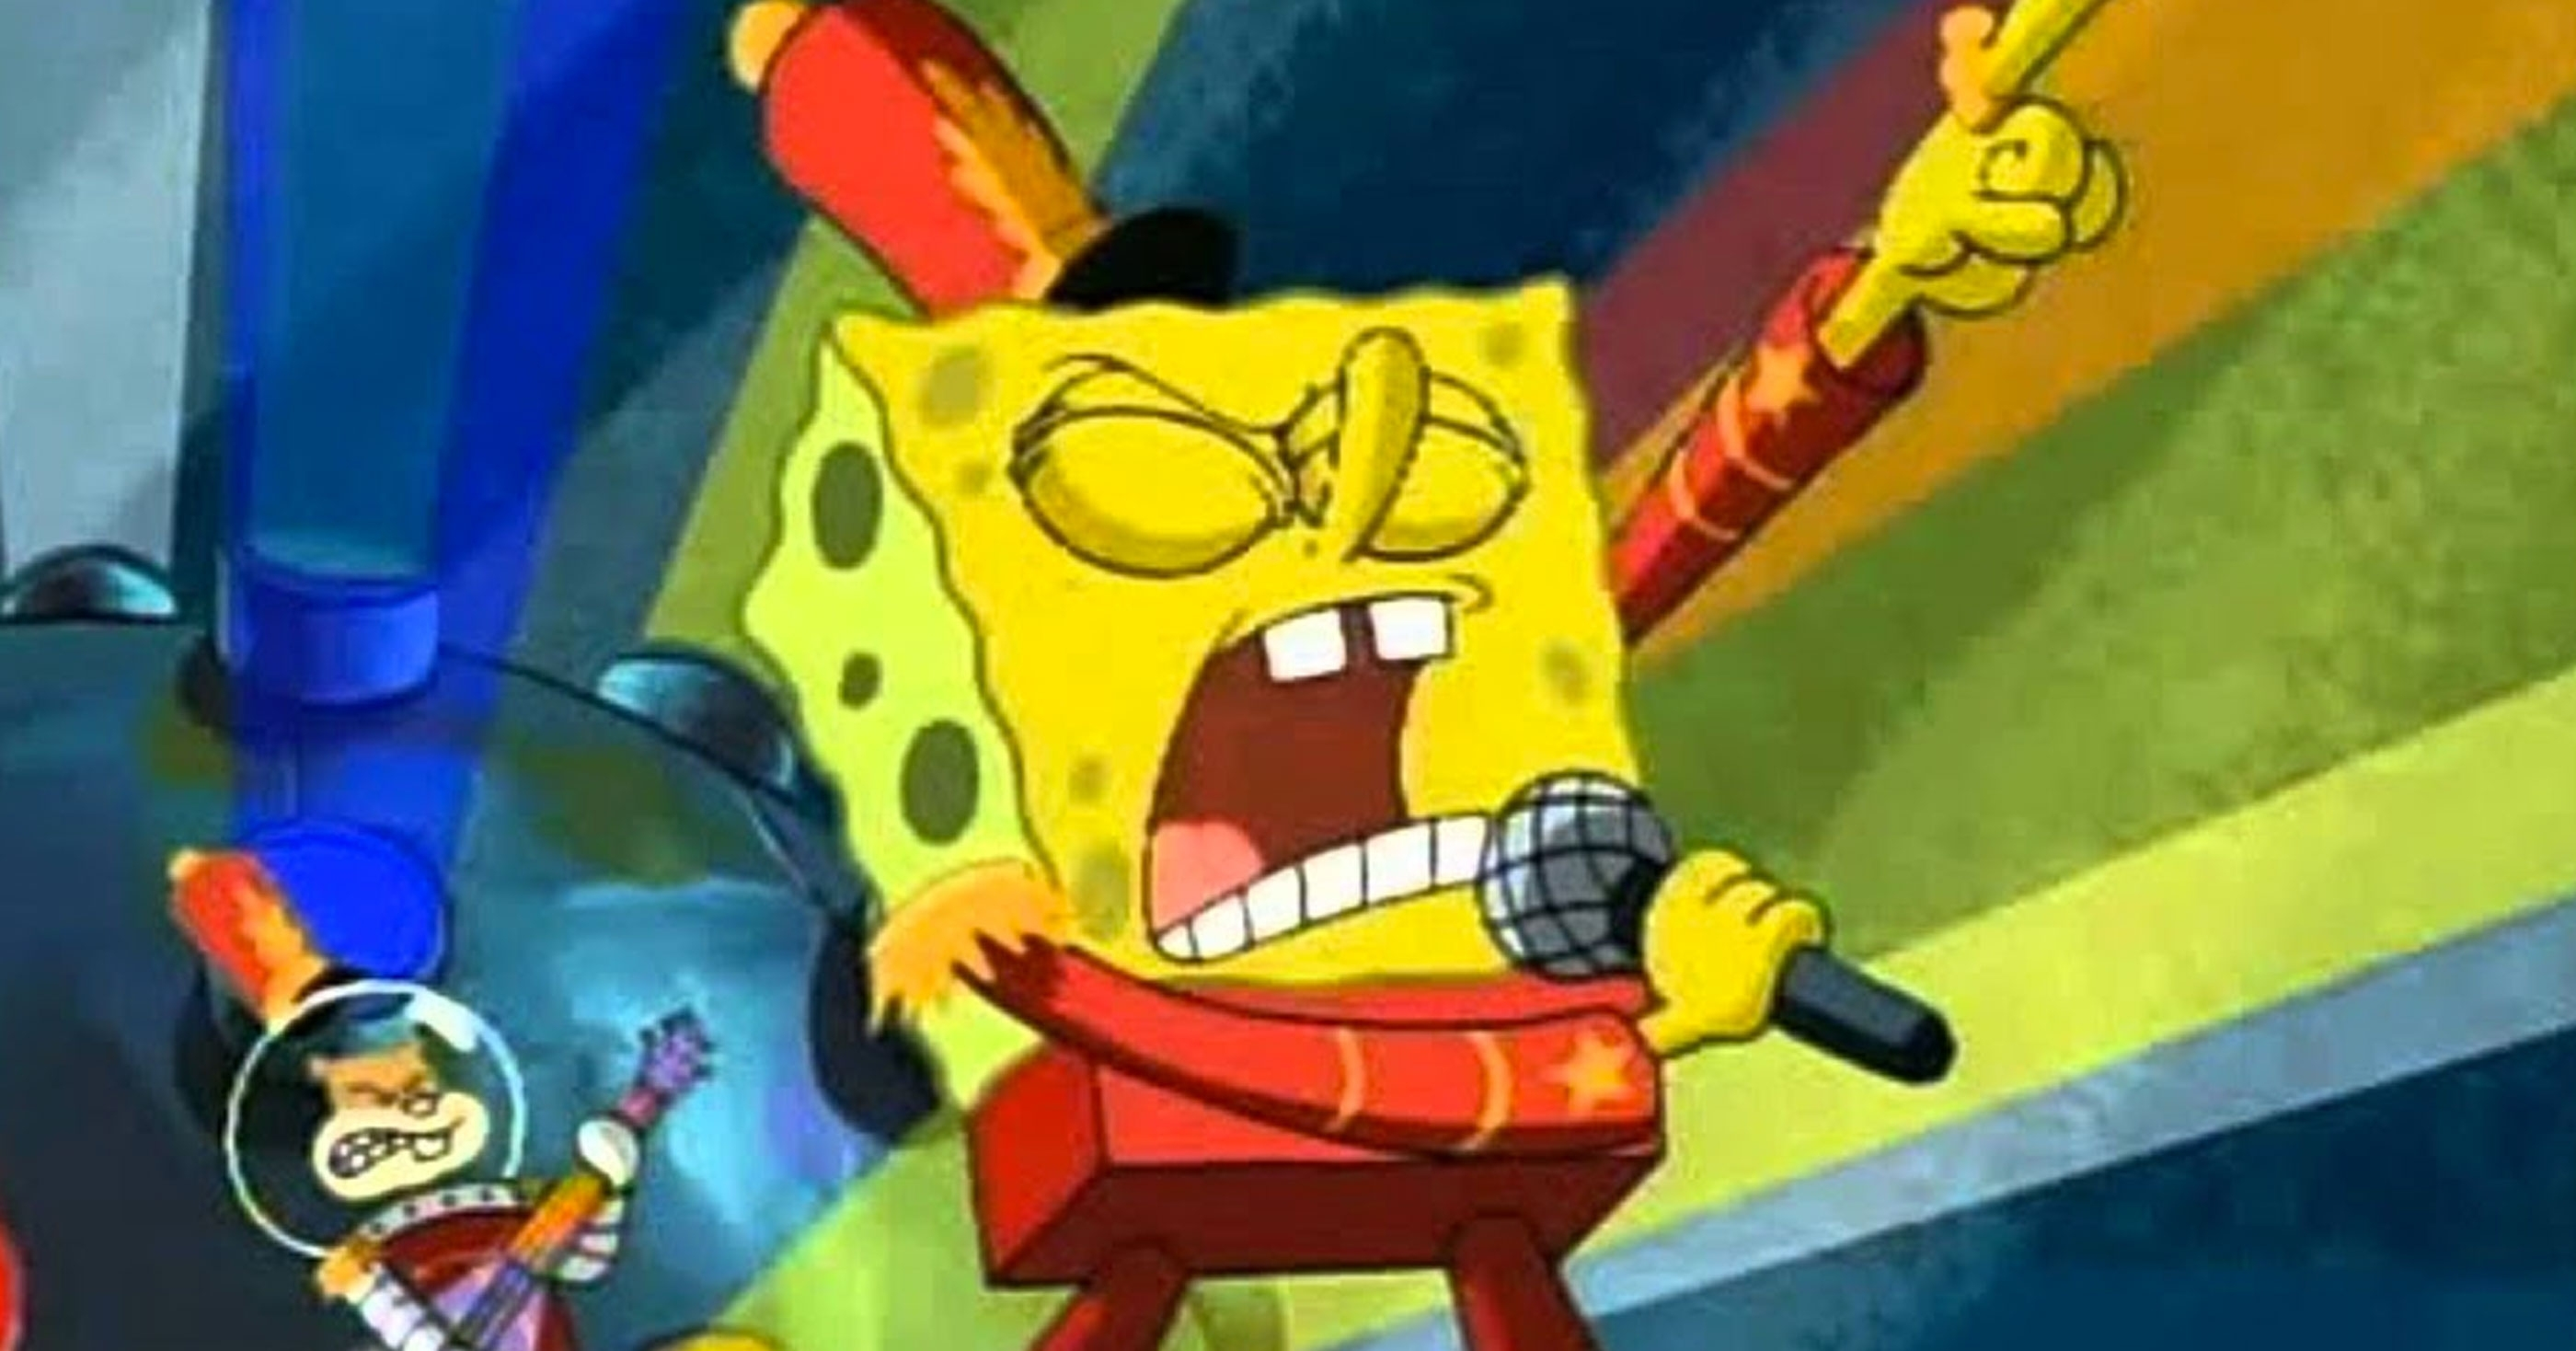 Petition For Spongebob's 'sweet Victory' To Be Super Bowl 53 throughout Super Bowl 2019 Sweet Victory